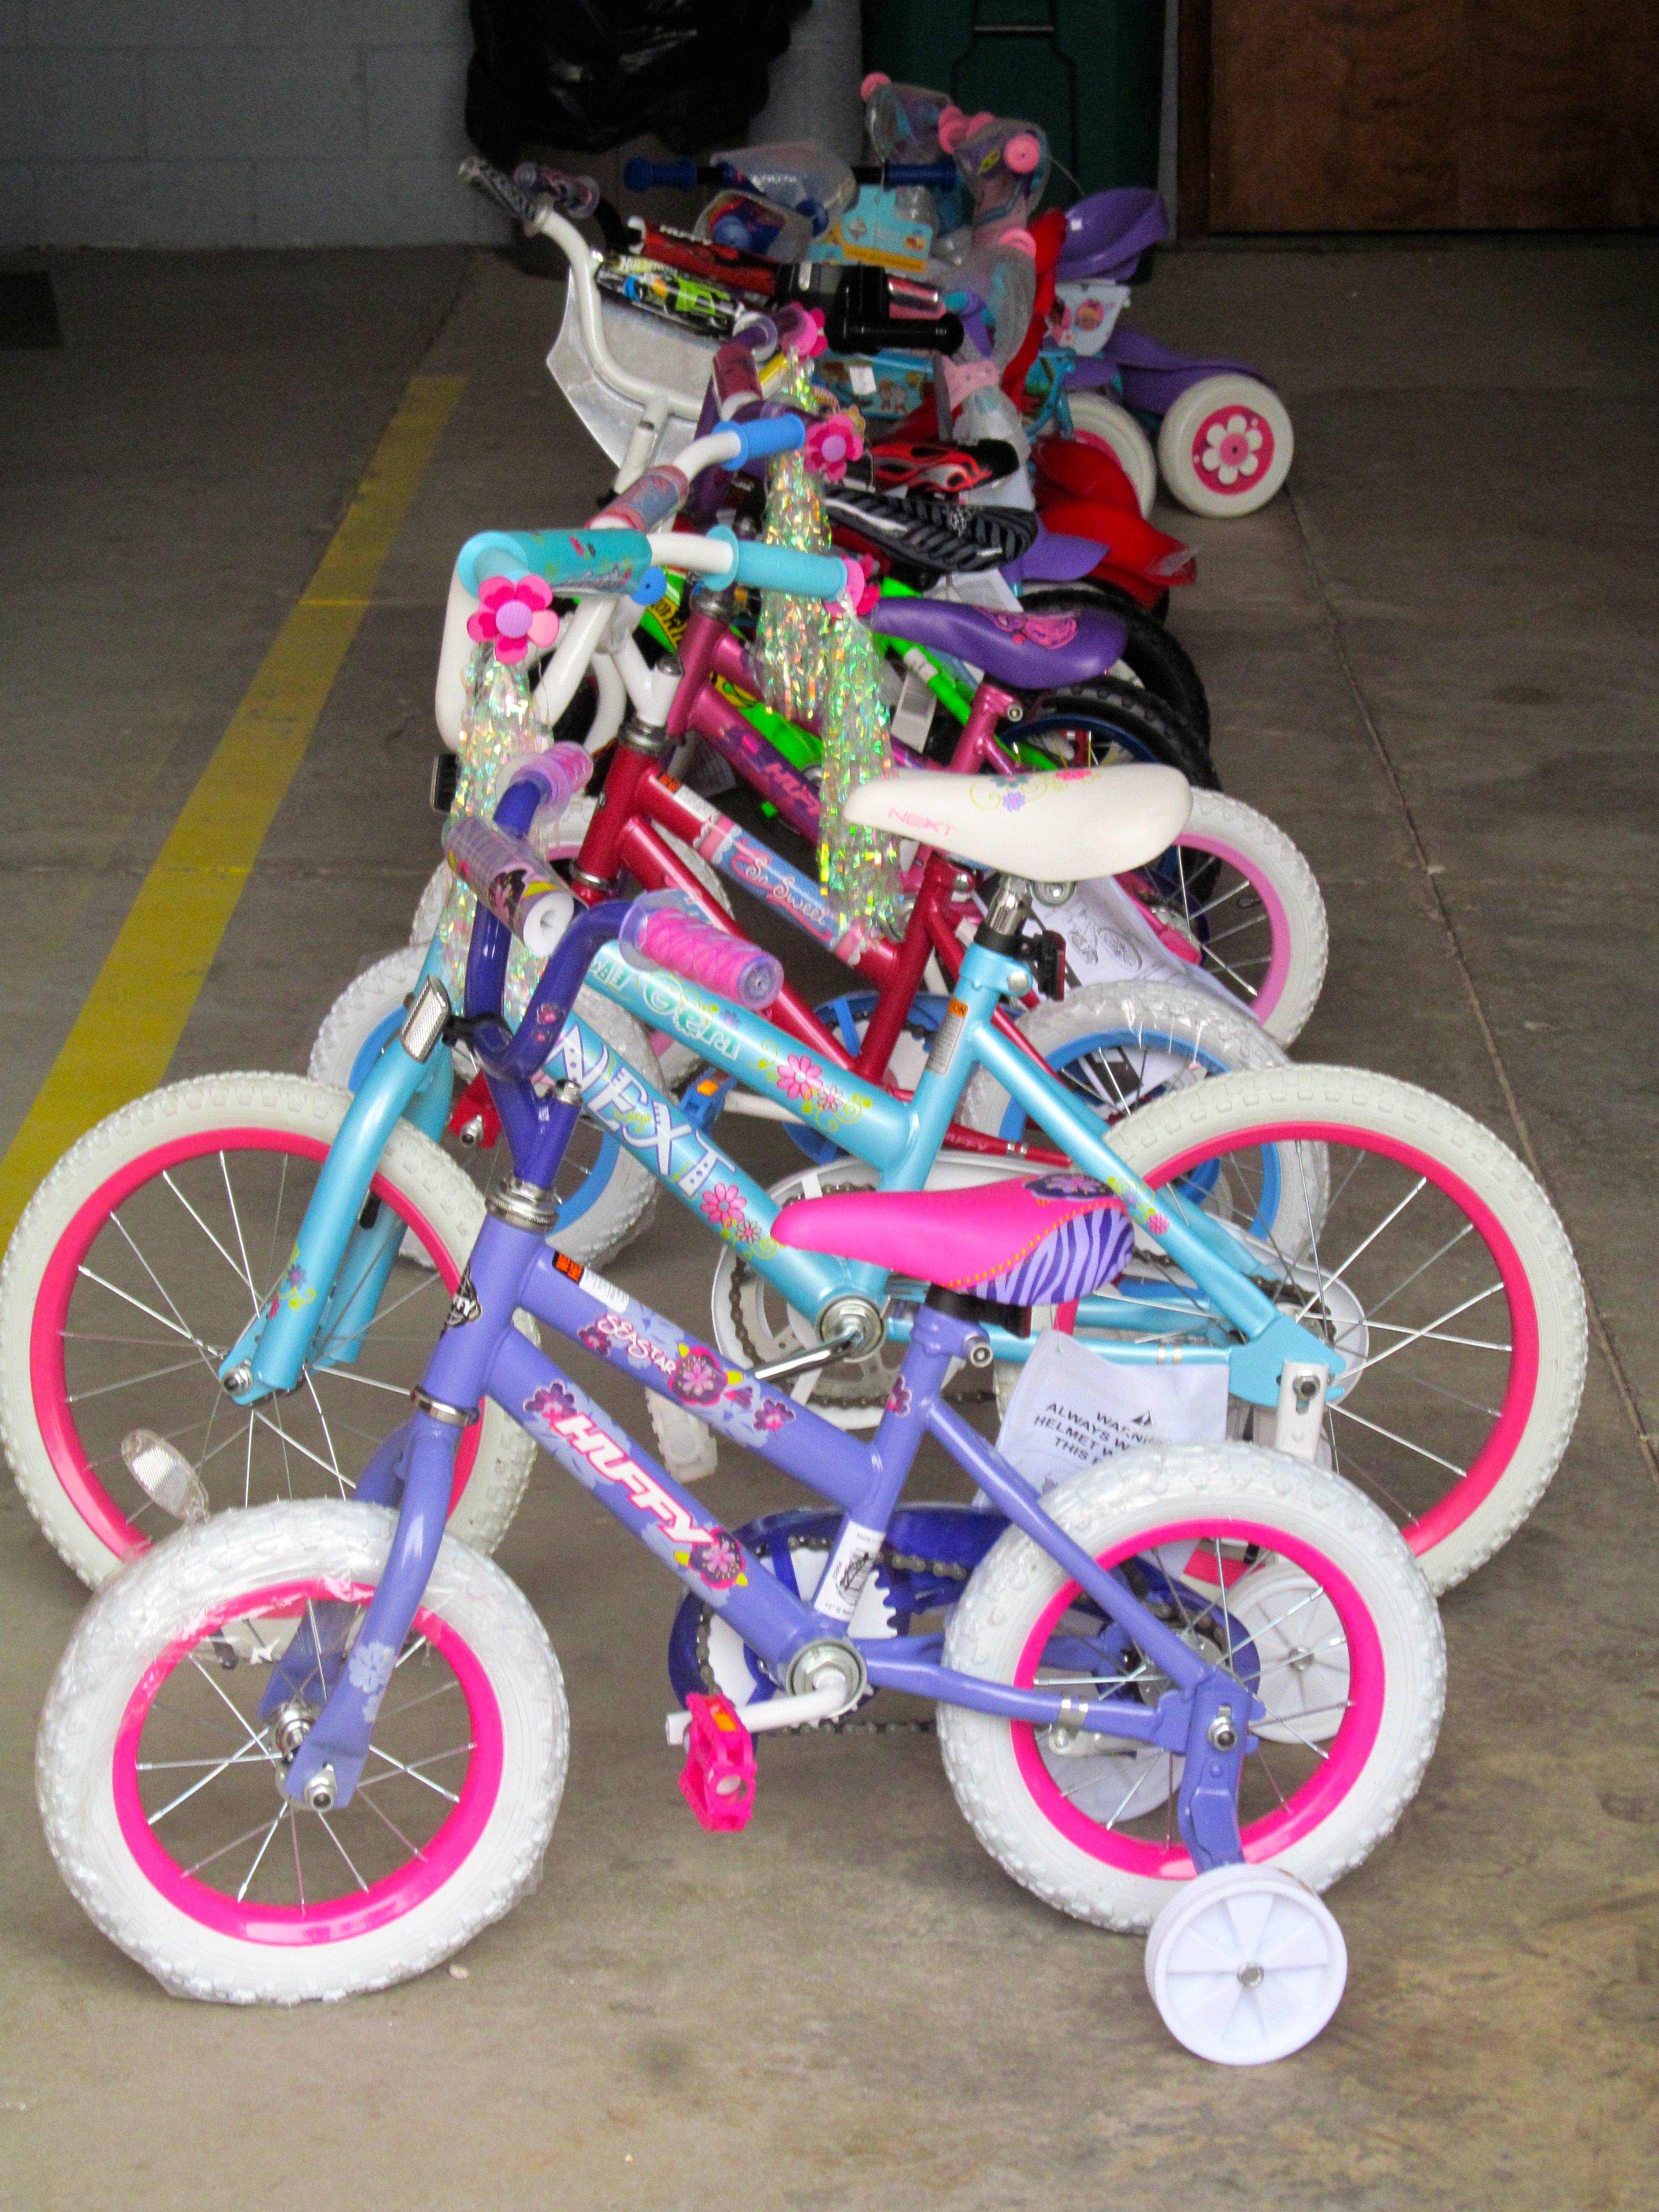 Bikes Toys For Tots Or Bust : Huron township romulus police departments distribute